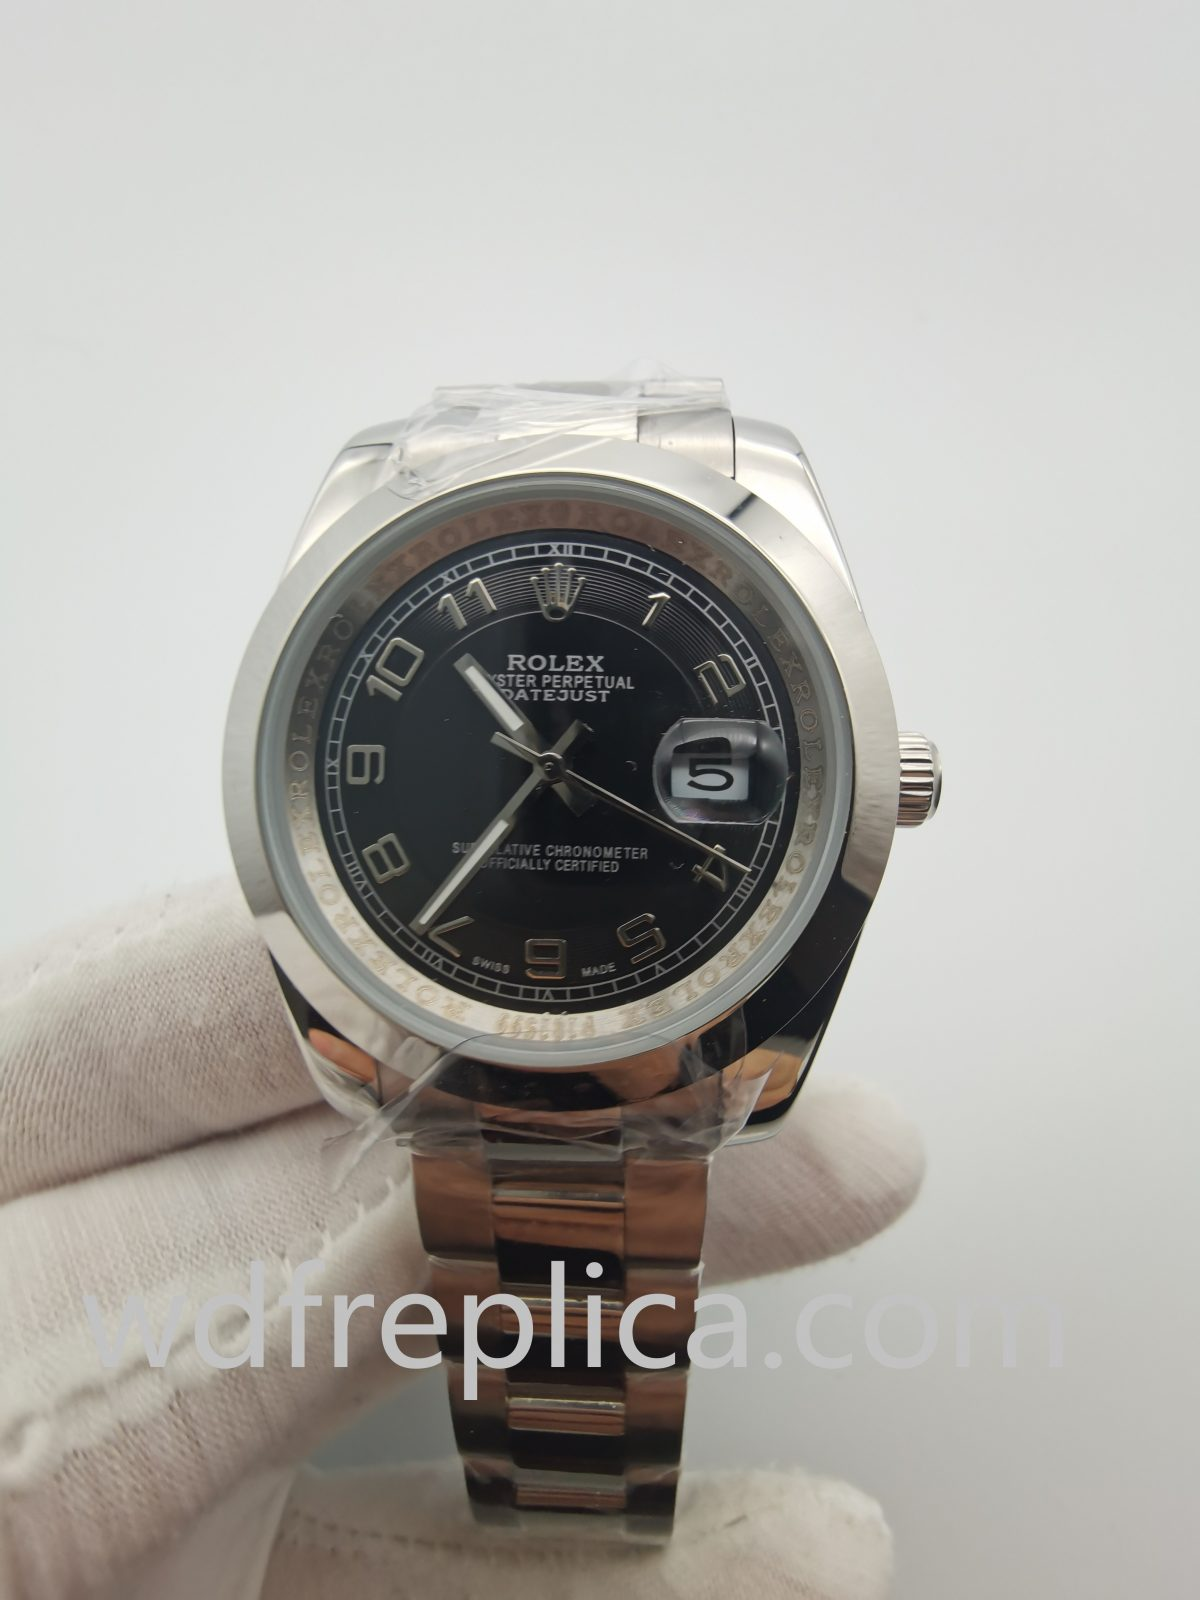 Rolex Datejust 116200-blusdj Stainless Steel Strap Material Watch